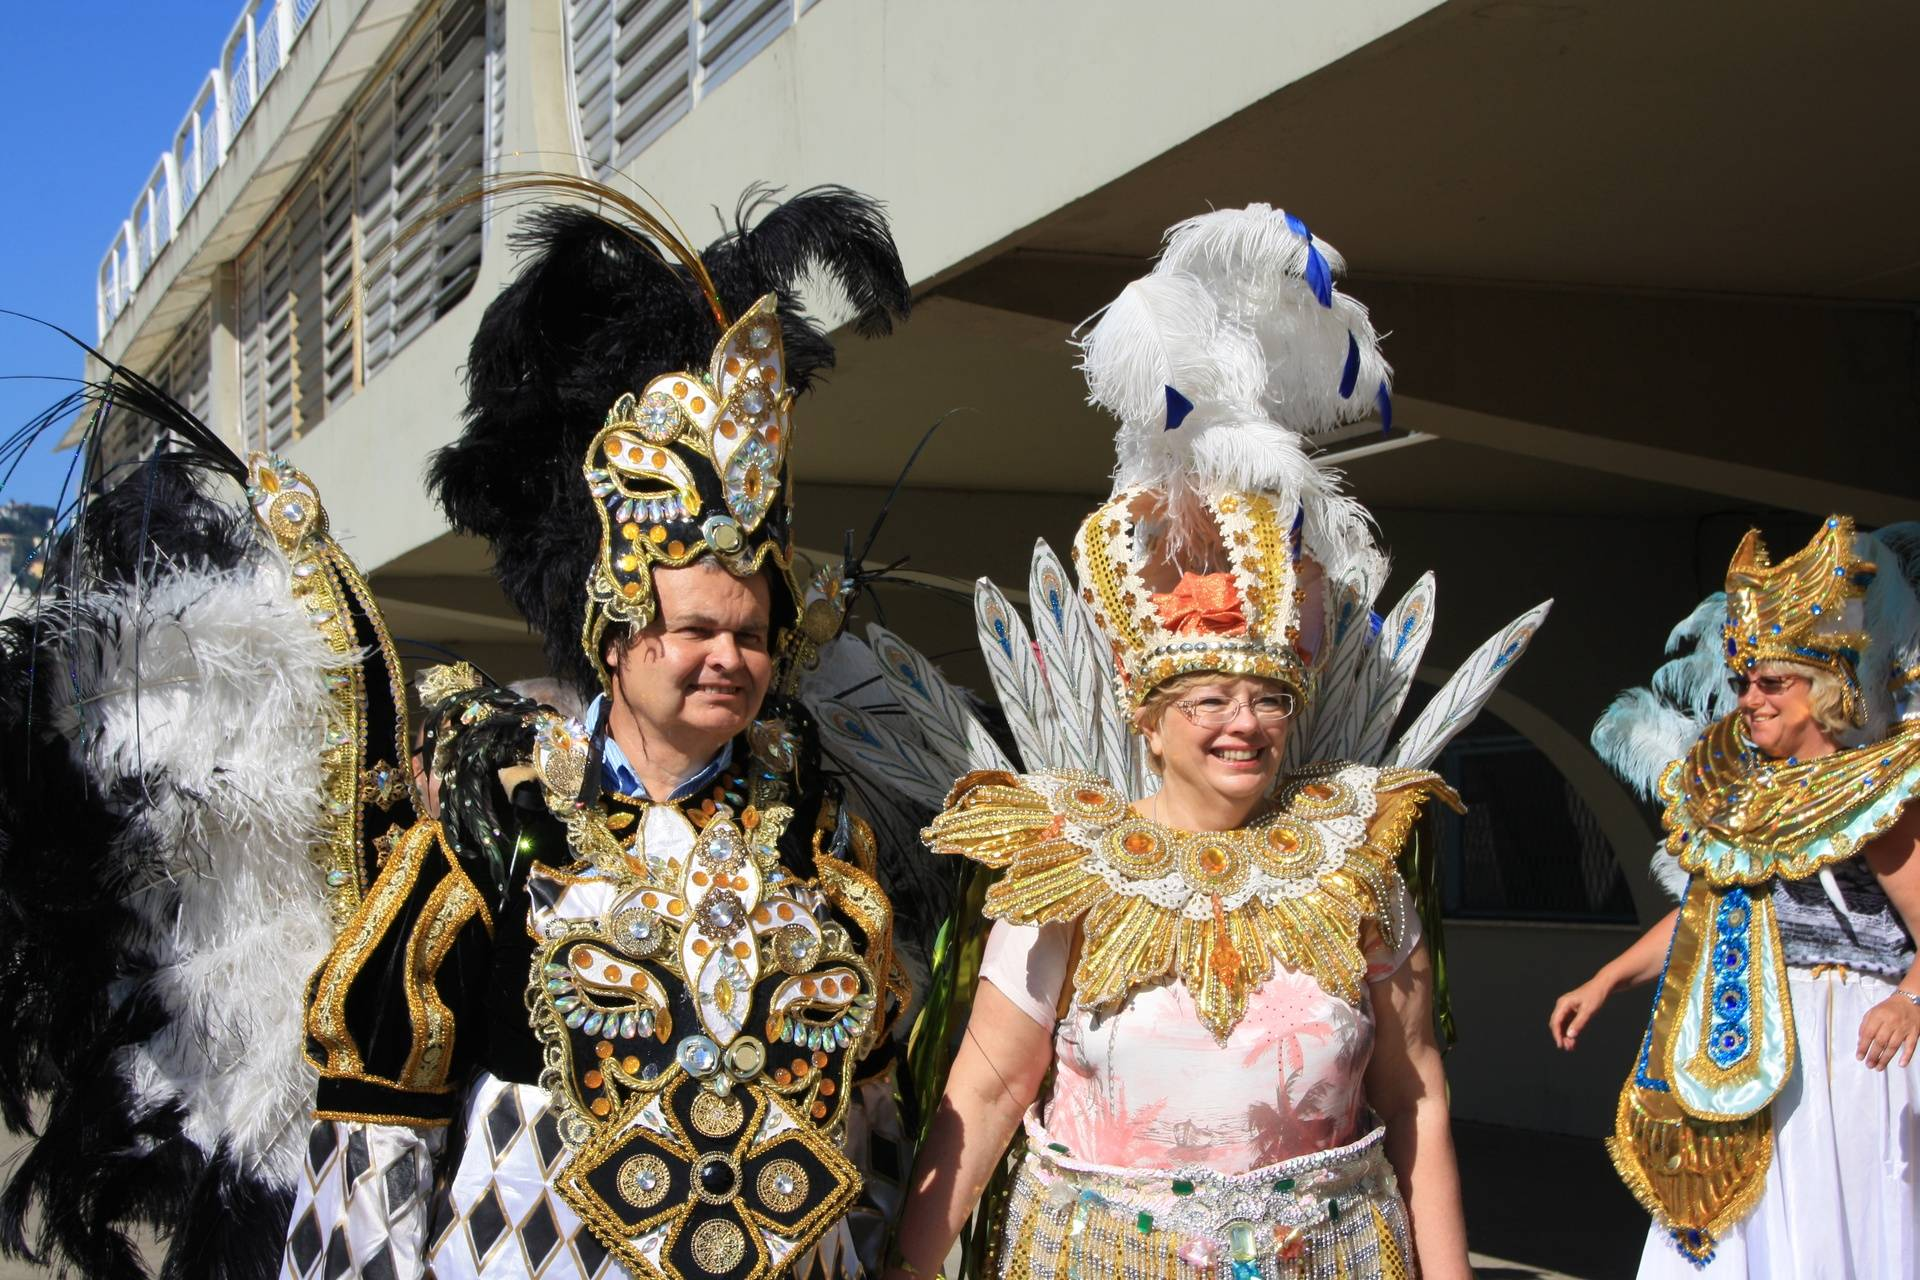 Lynda and Randy - Dressing for Carnival in Rio